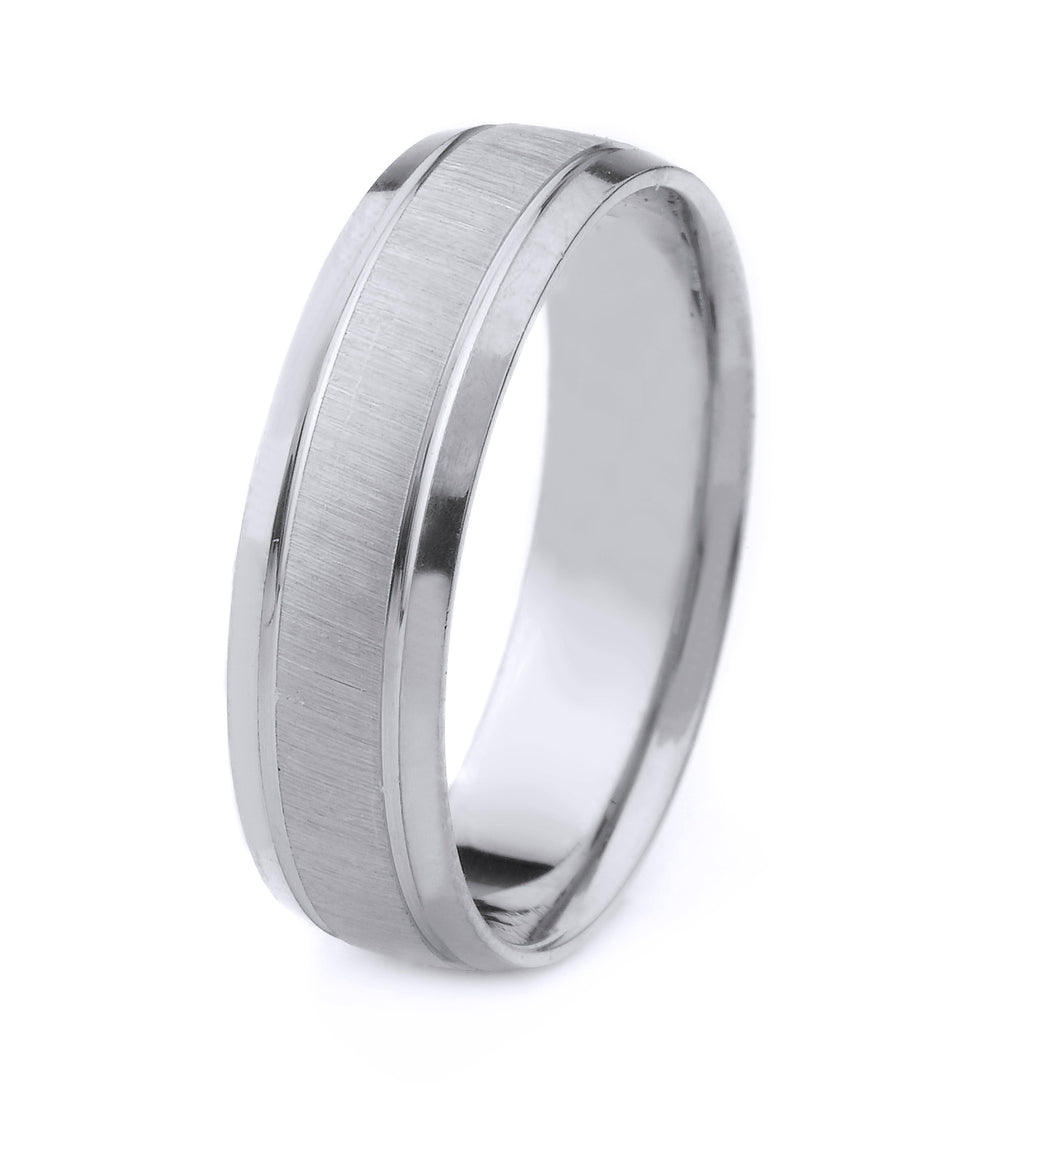 PLATINUM MENS WEDDING BAND WITH CROSS SATIN FINISH POLISHED BEVELED EDGES AND GROOVES